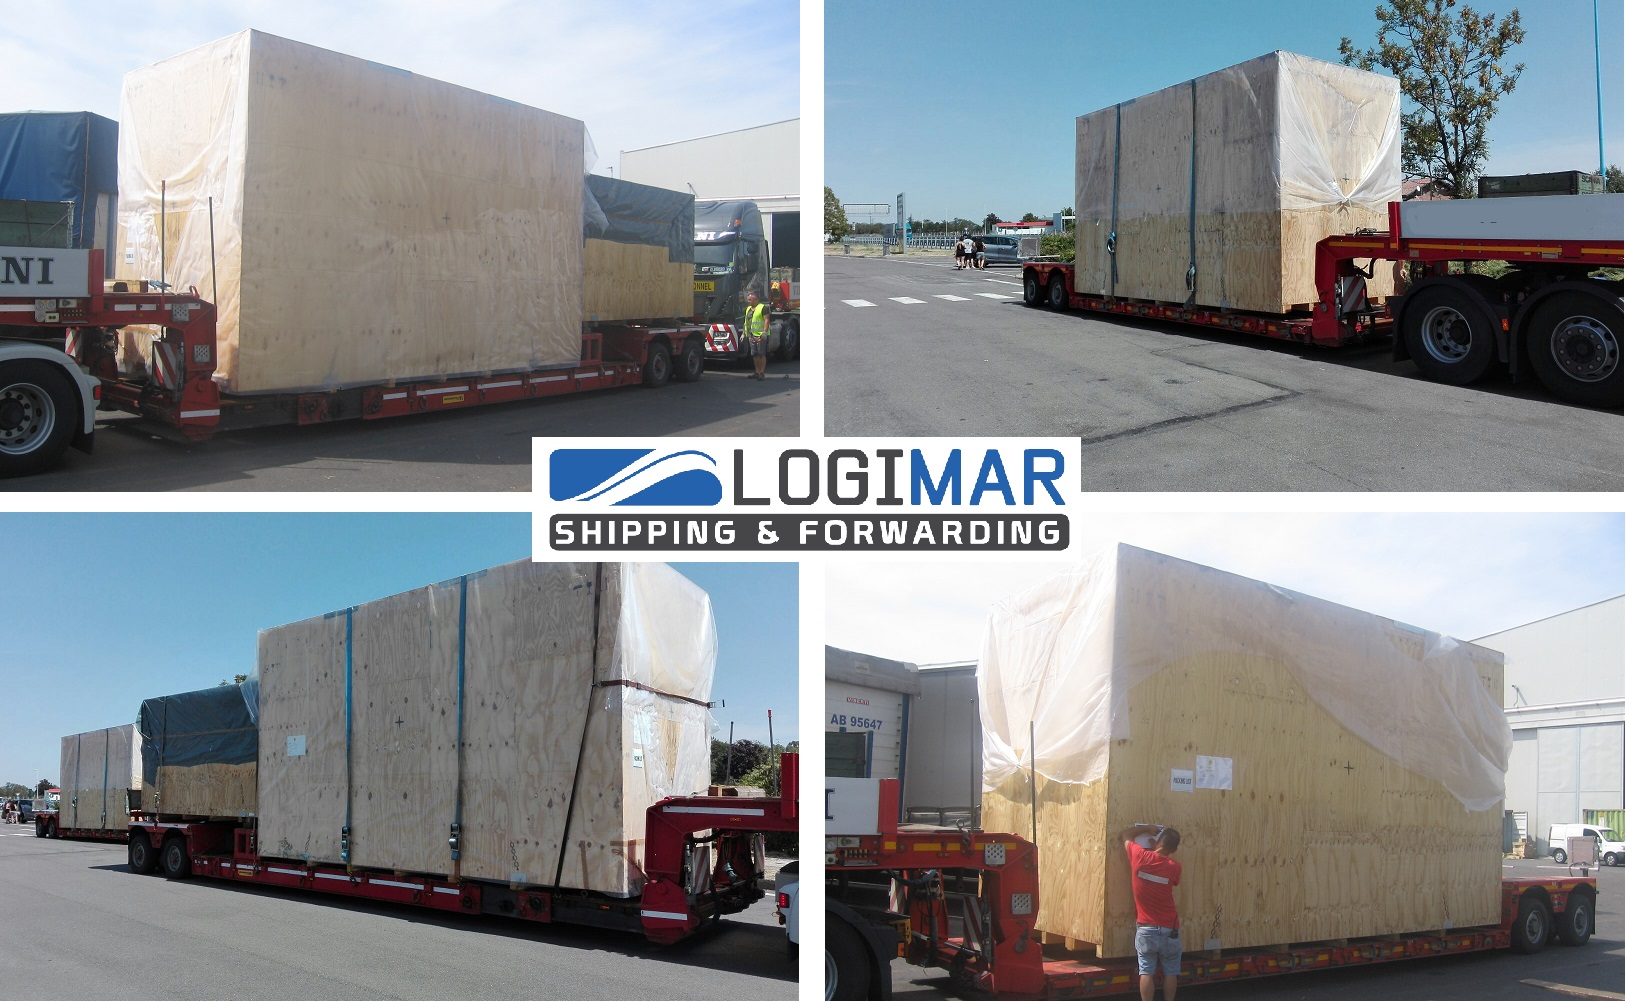 Logimar handles shipment from Italy to Indonesia